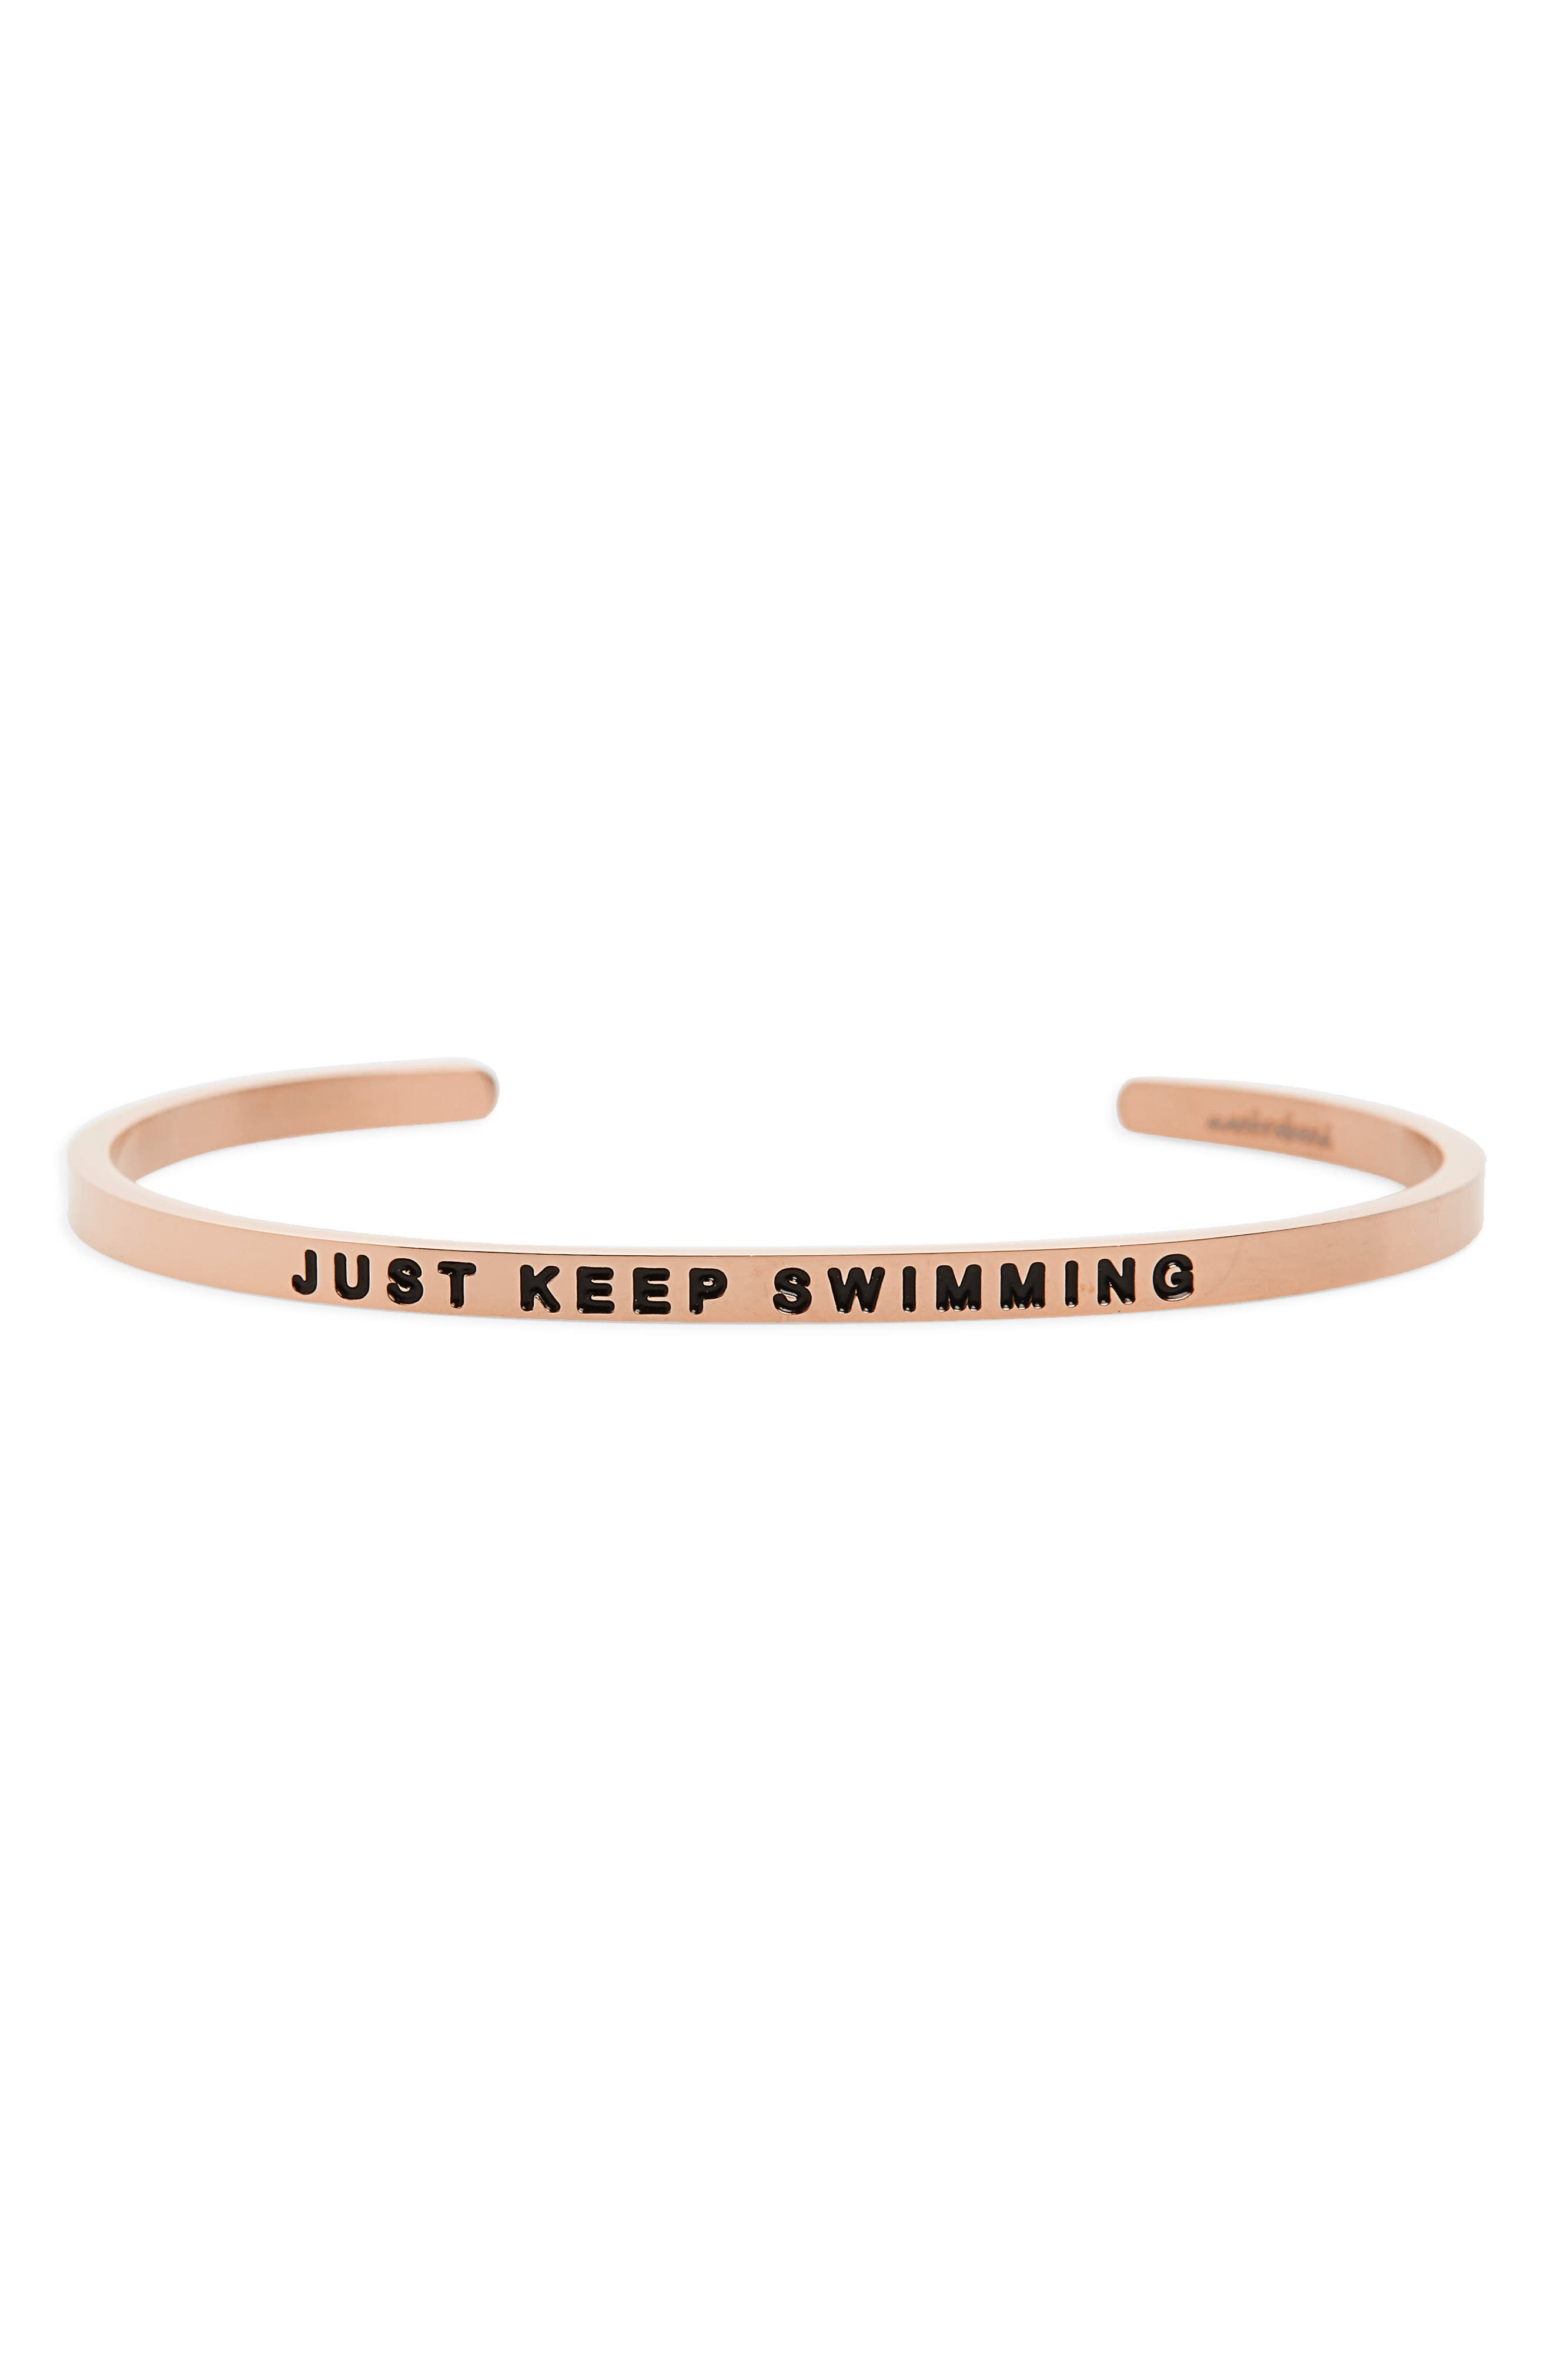 Alternate Image 1 Selected - MantraBand Just Keep Swimming Engraved Cuff